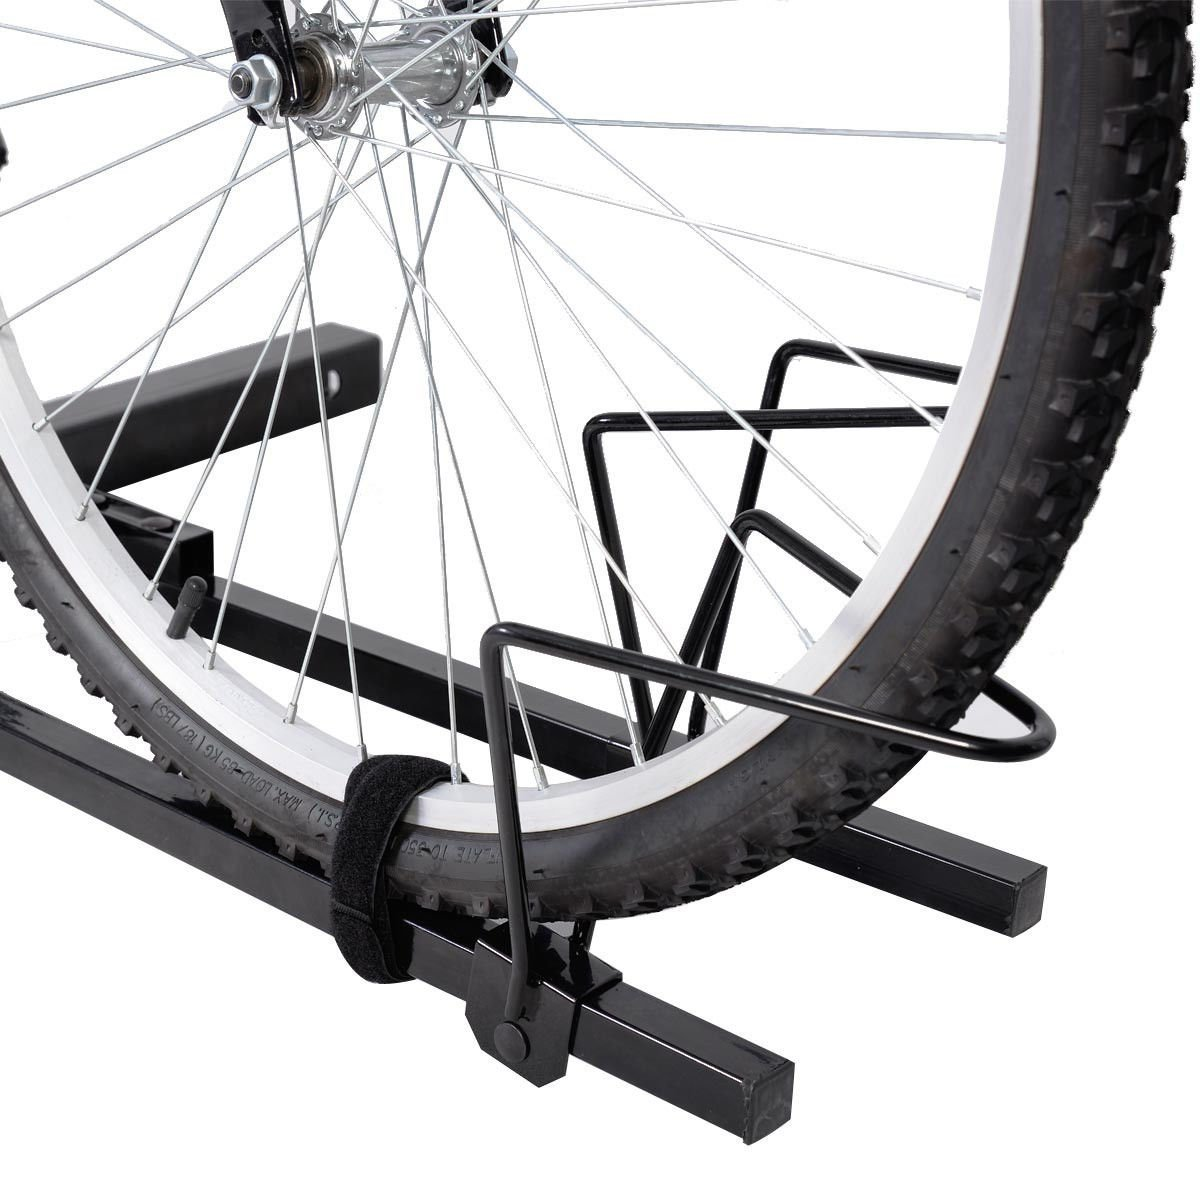 New Upright 2 Mountain Bike Rack Hitch Carrier 2'' Rear for SUV VAN Truck Bike Rack by EGO BIKE